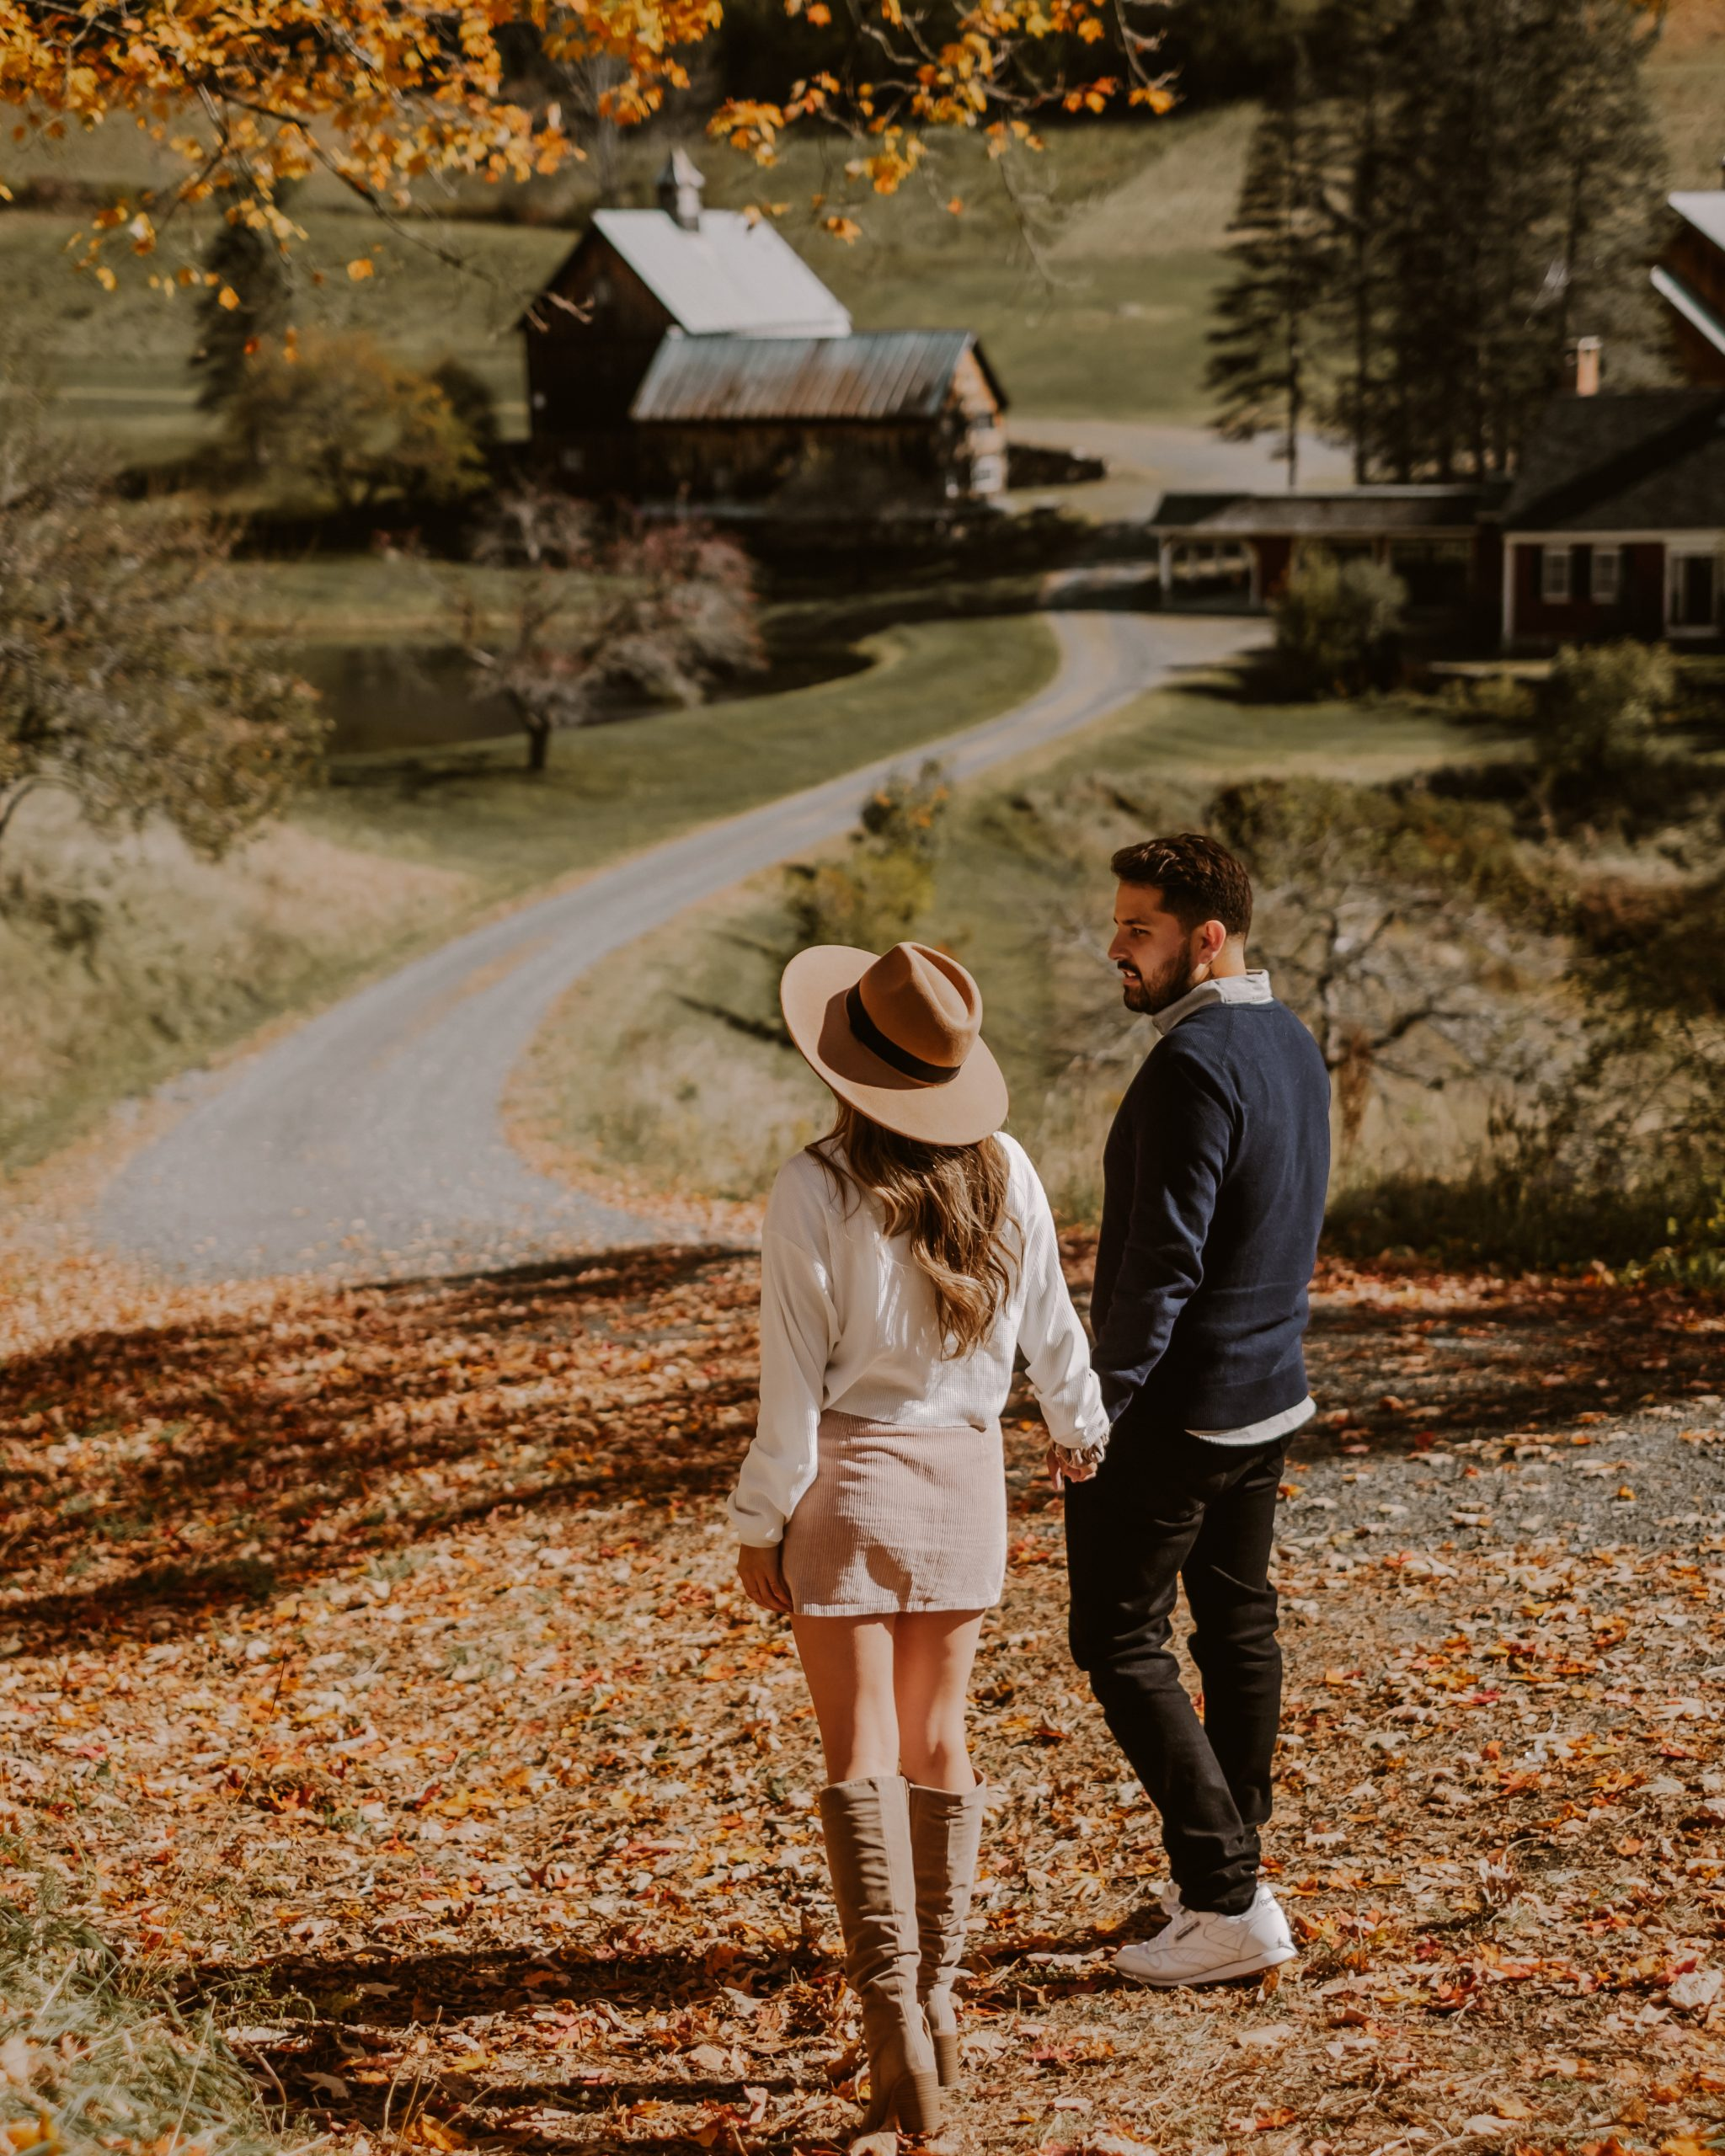 Fall in Vermont - Road-trip Guide and Itinerary   fall foliage, New England travel guide, fall fashion and outfit inspo, aesthetic fall photos